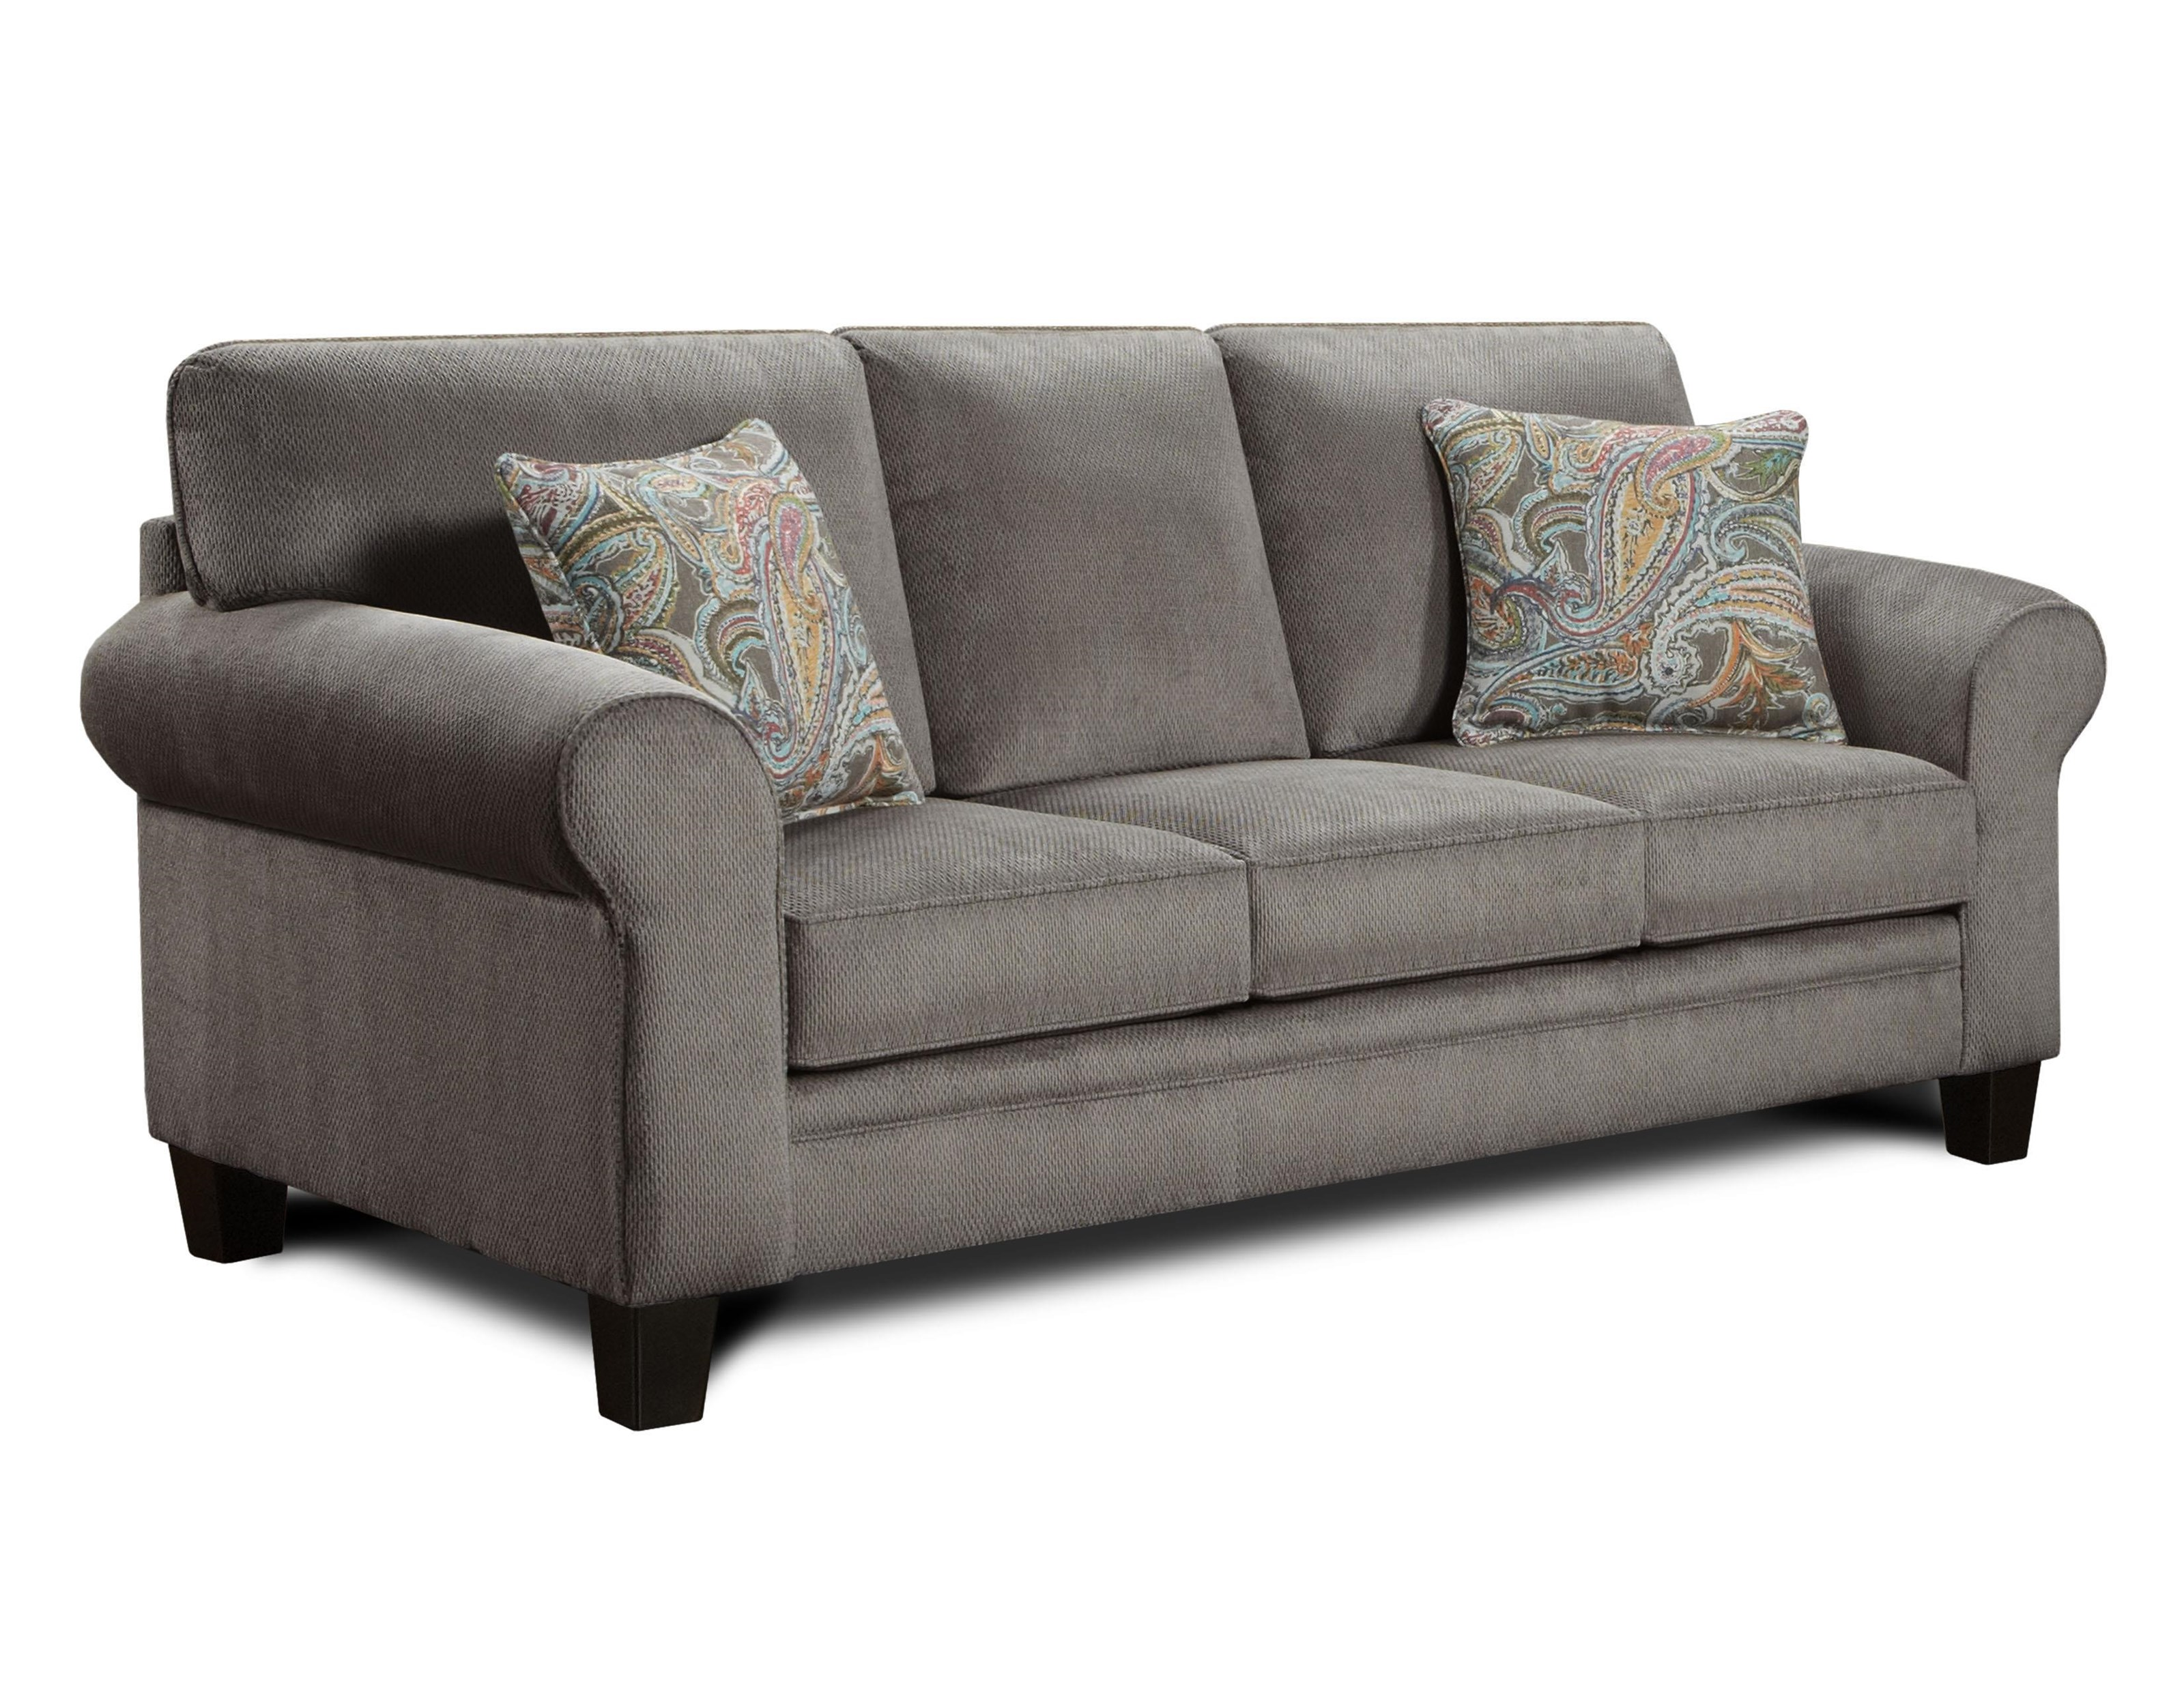 Lovely Transitional Style Sofa